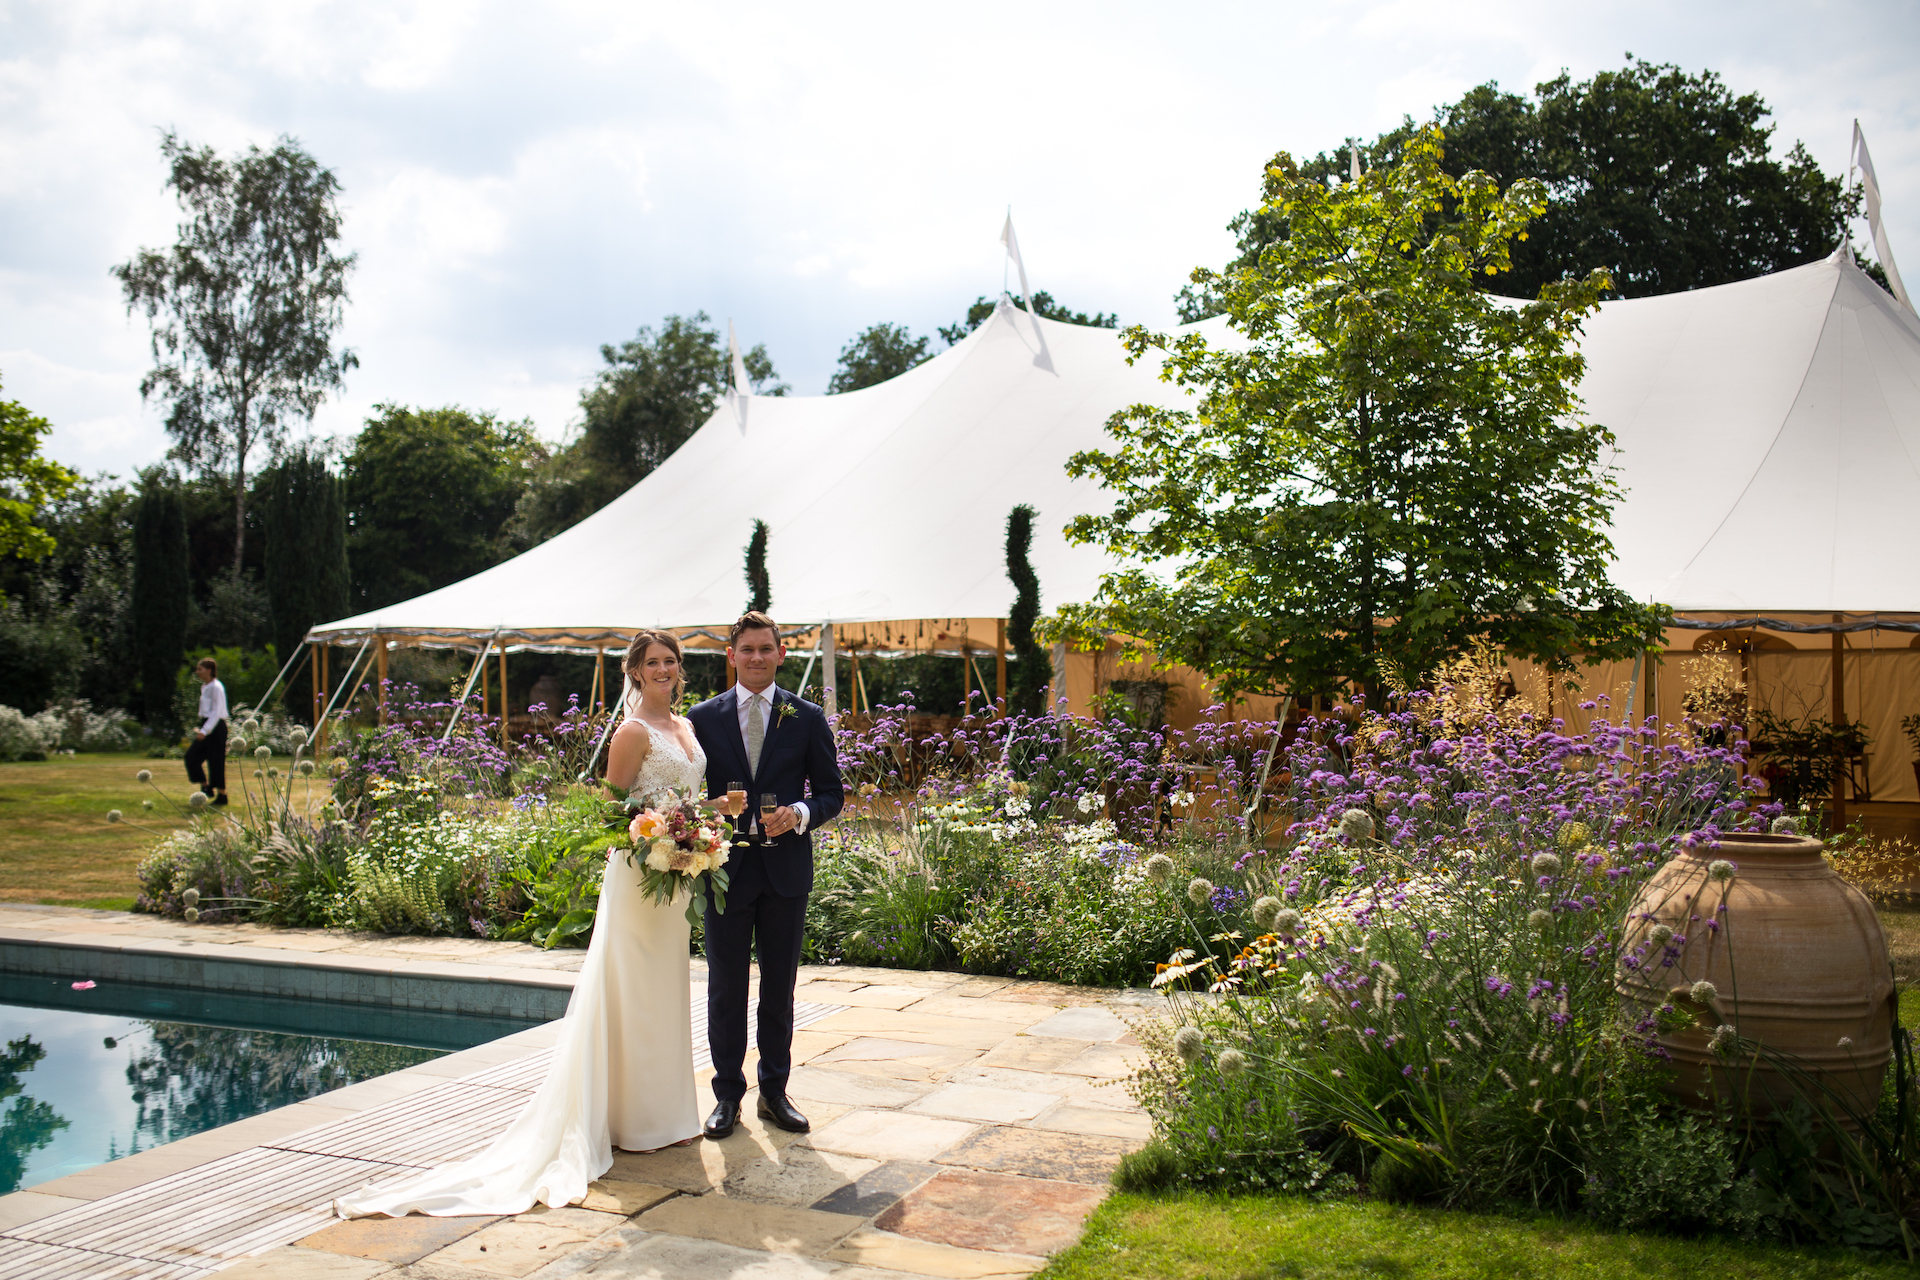 PapaKåta Sperry Tent Wedding at Ella & George's family home in Sussex- The new Mr & Mrs